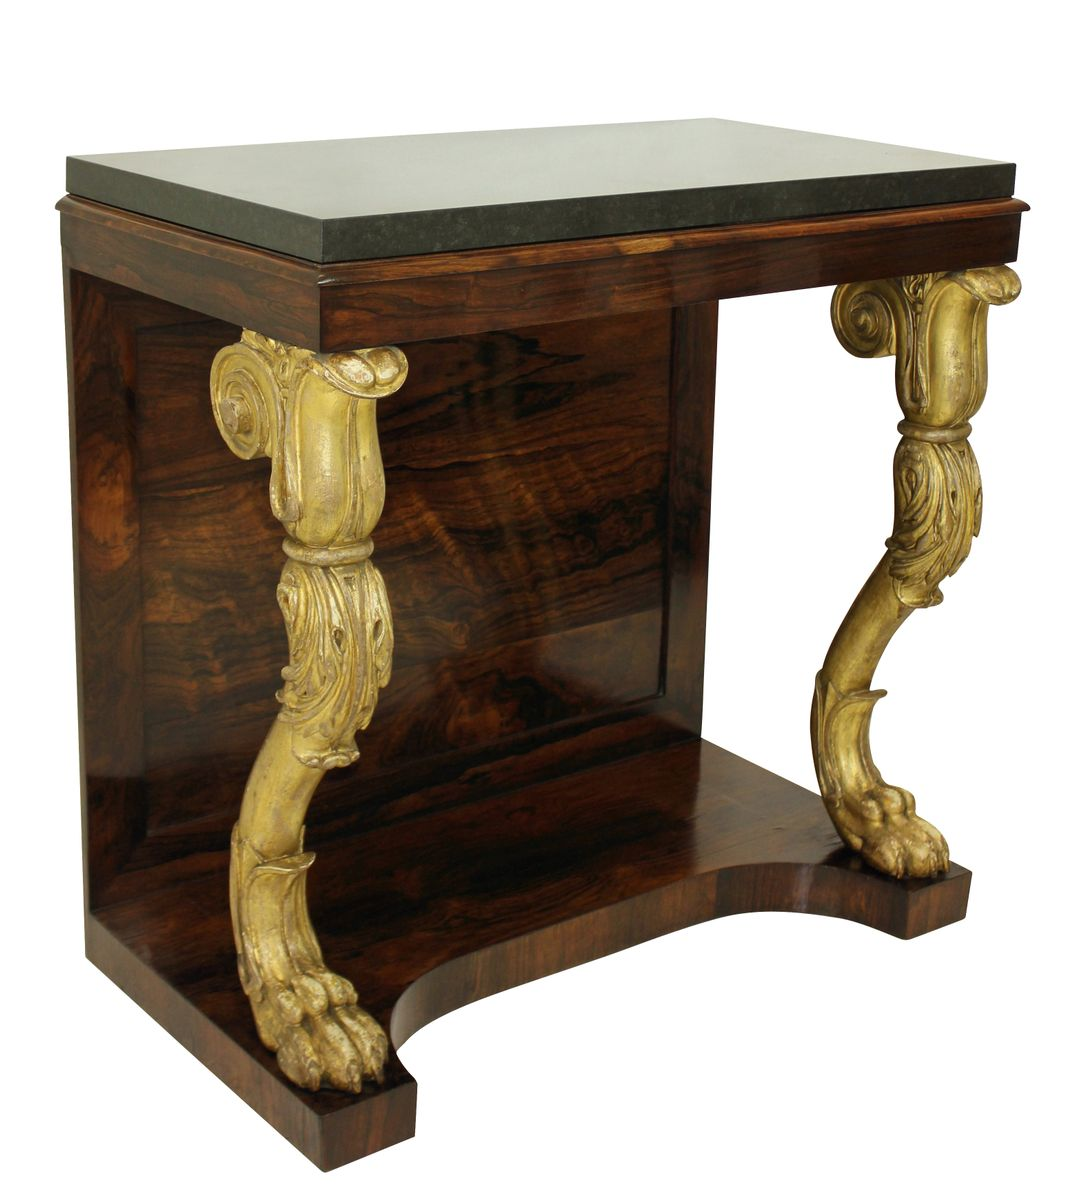 English regency rosewood gilt wood console table 1810s for sale 631000 geotapseo Gallery